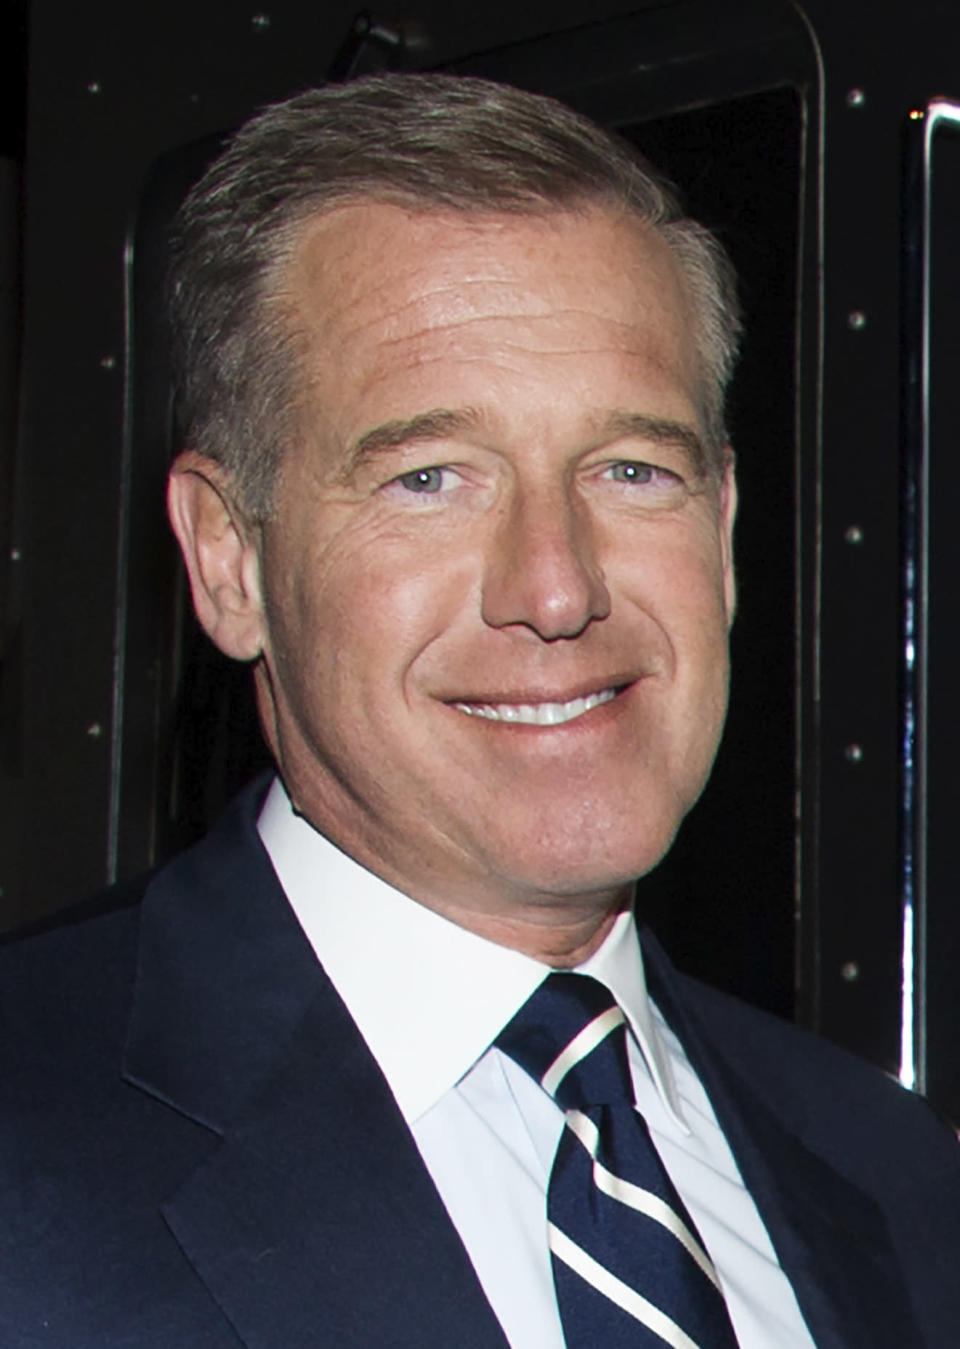 """FILE - Brian Williams attends the after party following the premiere of HBO's """"Girls"""" third season in New York on Jan. 6, 2014. A new podcast based on Joe Garner's 1998 book, """"We Interrupt This Broadcast,"""" narrated by Williams, will be available on July 20. Episodes in the first season explore the Sept. 11, 2001 attacks, John F. Kennedy's assassination and the moon landing. (Photo by Charles Sykes/Invision/AP, File)"""